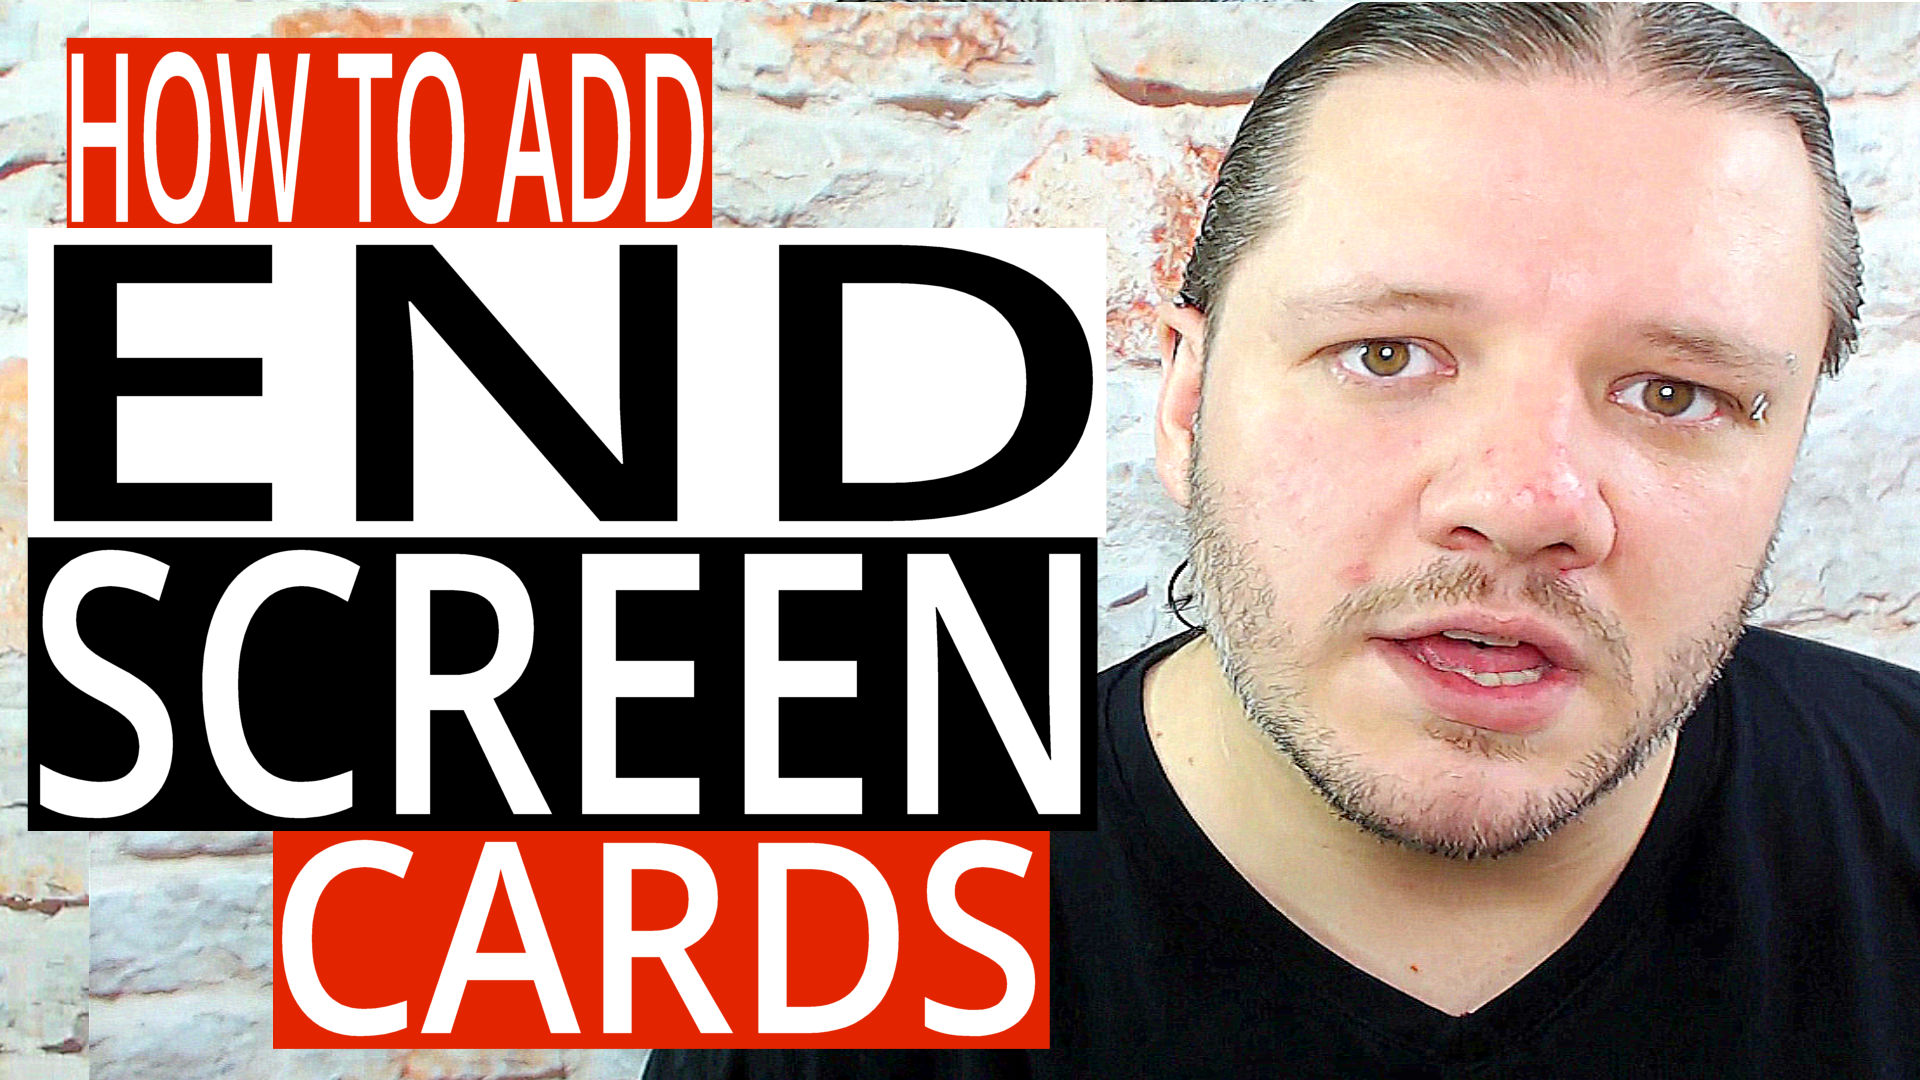 alan spicer,alanspicer,youtube tips,asyt,youtube tips 2018,How To Add End Cards To YouTube Videos,how to add end cards at the end of your videos,How To Add End Cards,Add End Cards,end cards youtube,end cards for youtube videos,end cards templates,how to add end screen annotations,how to add end screen to youtube videos,end screen,end screen youtube,youtube end screen cards,end screen cards,youtube cards tutorial,youtube cards 2018,youtube end cards tutorial